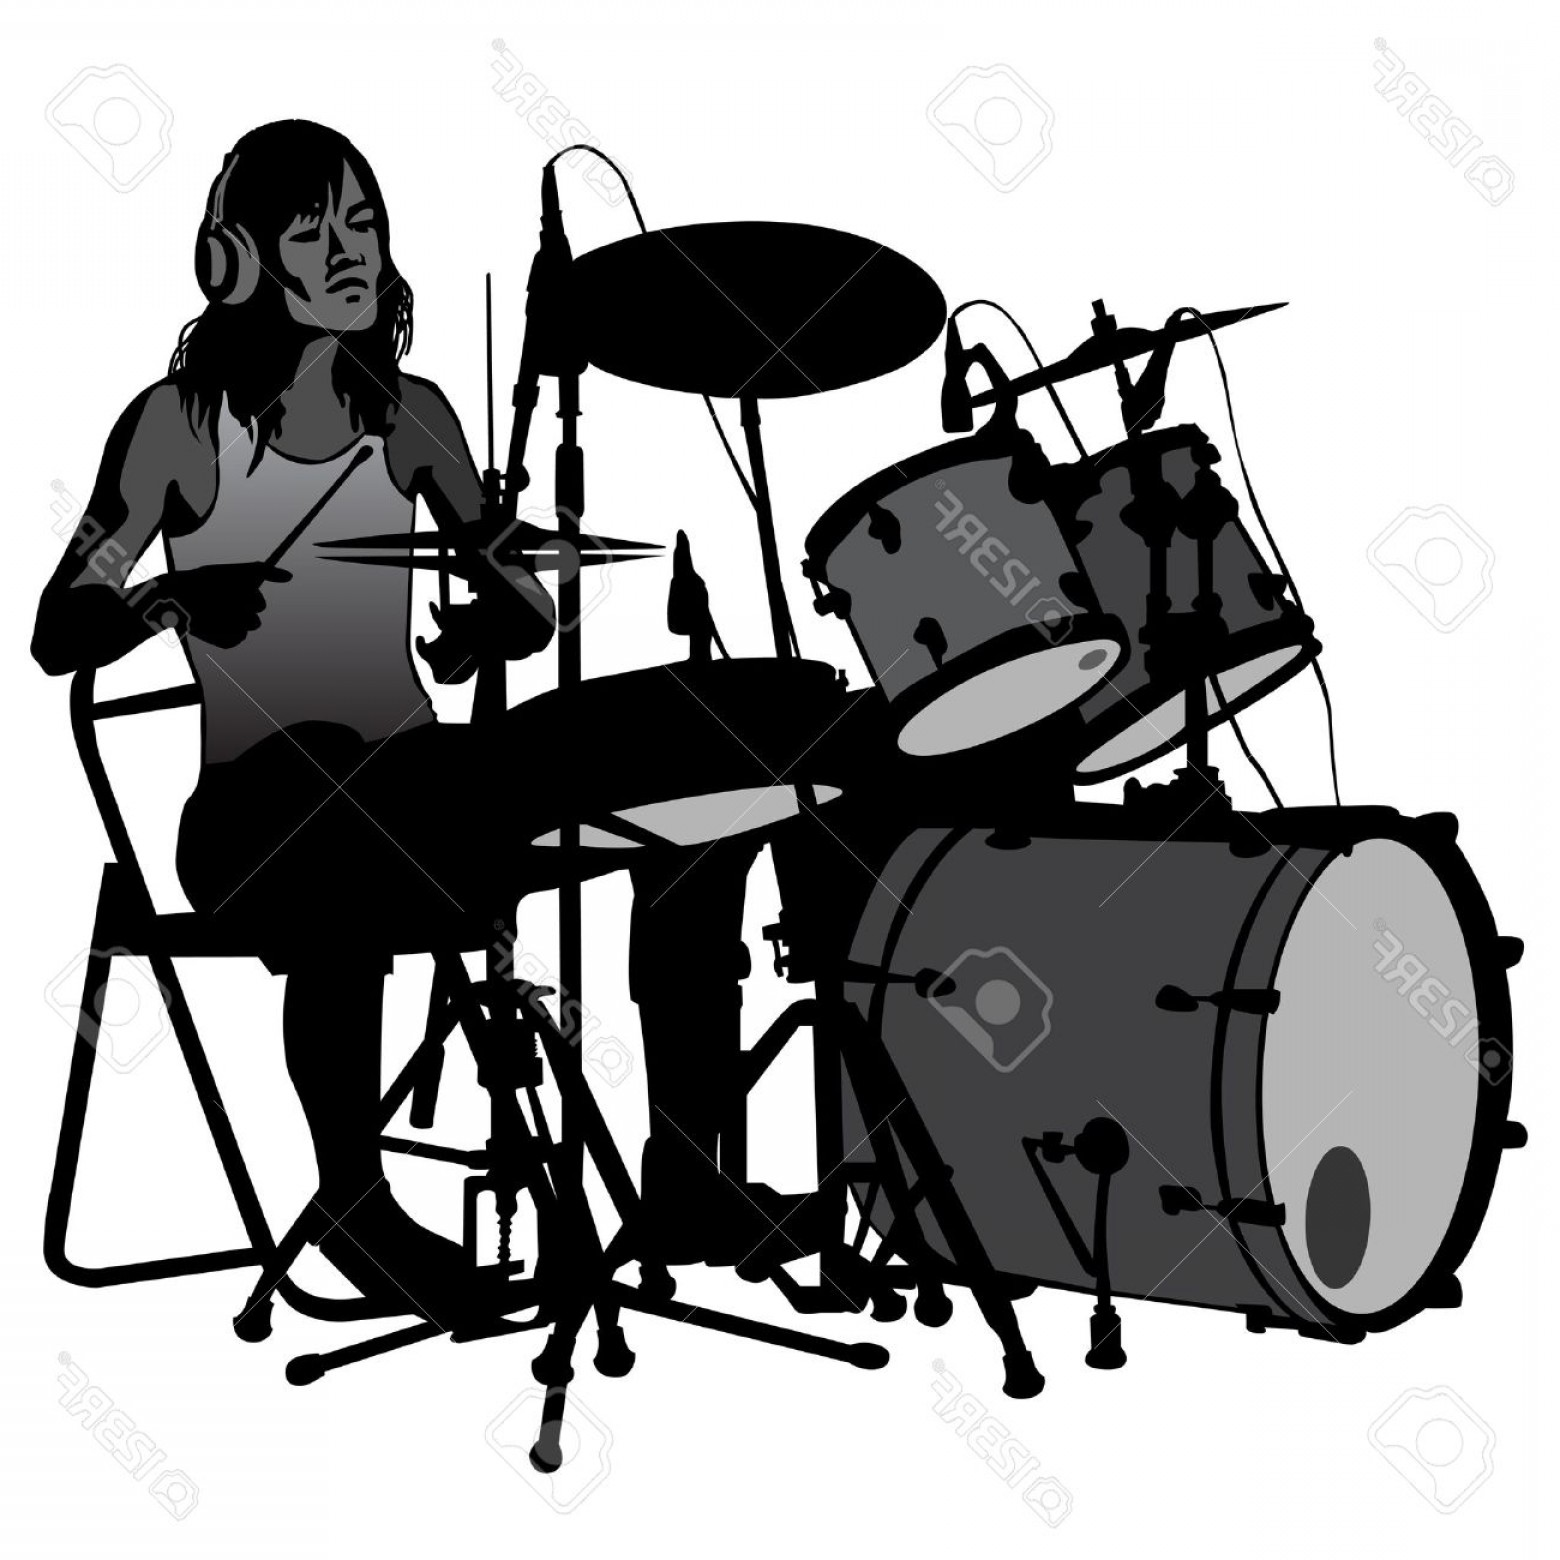 Drum Vector Art: Photostock Vector Drummer Beating The Drums On Stage Drum Set Silhouette Vector